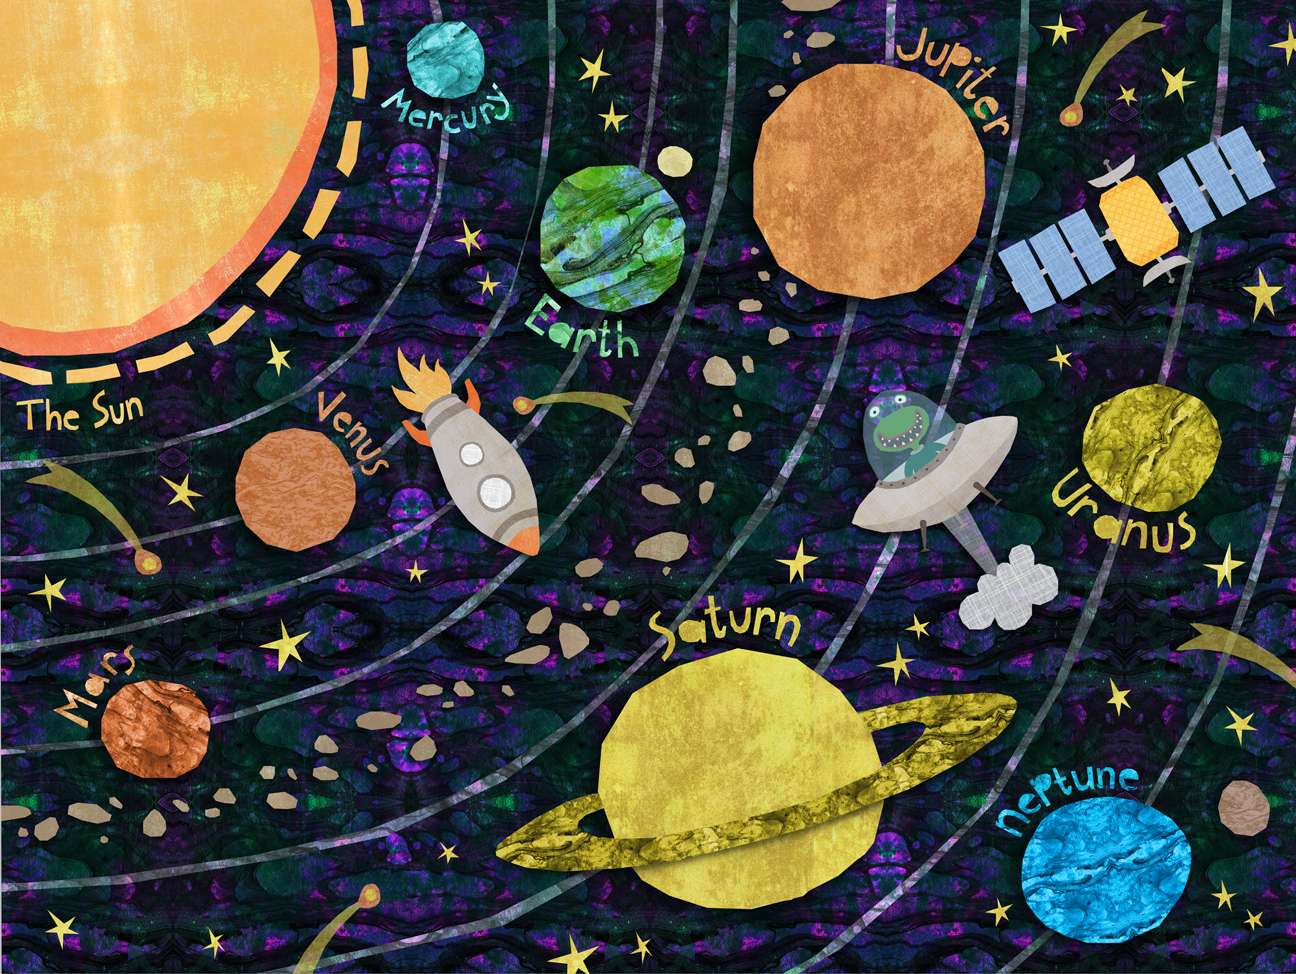 solar system wall painting pinterest - photo #27